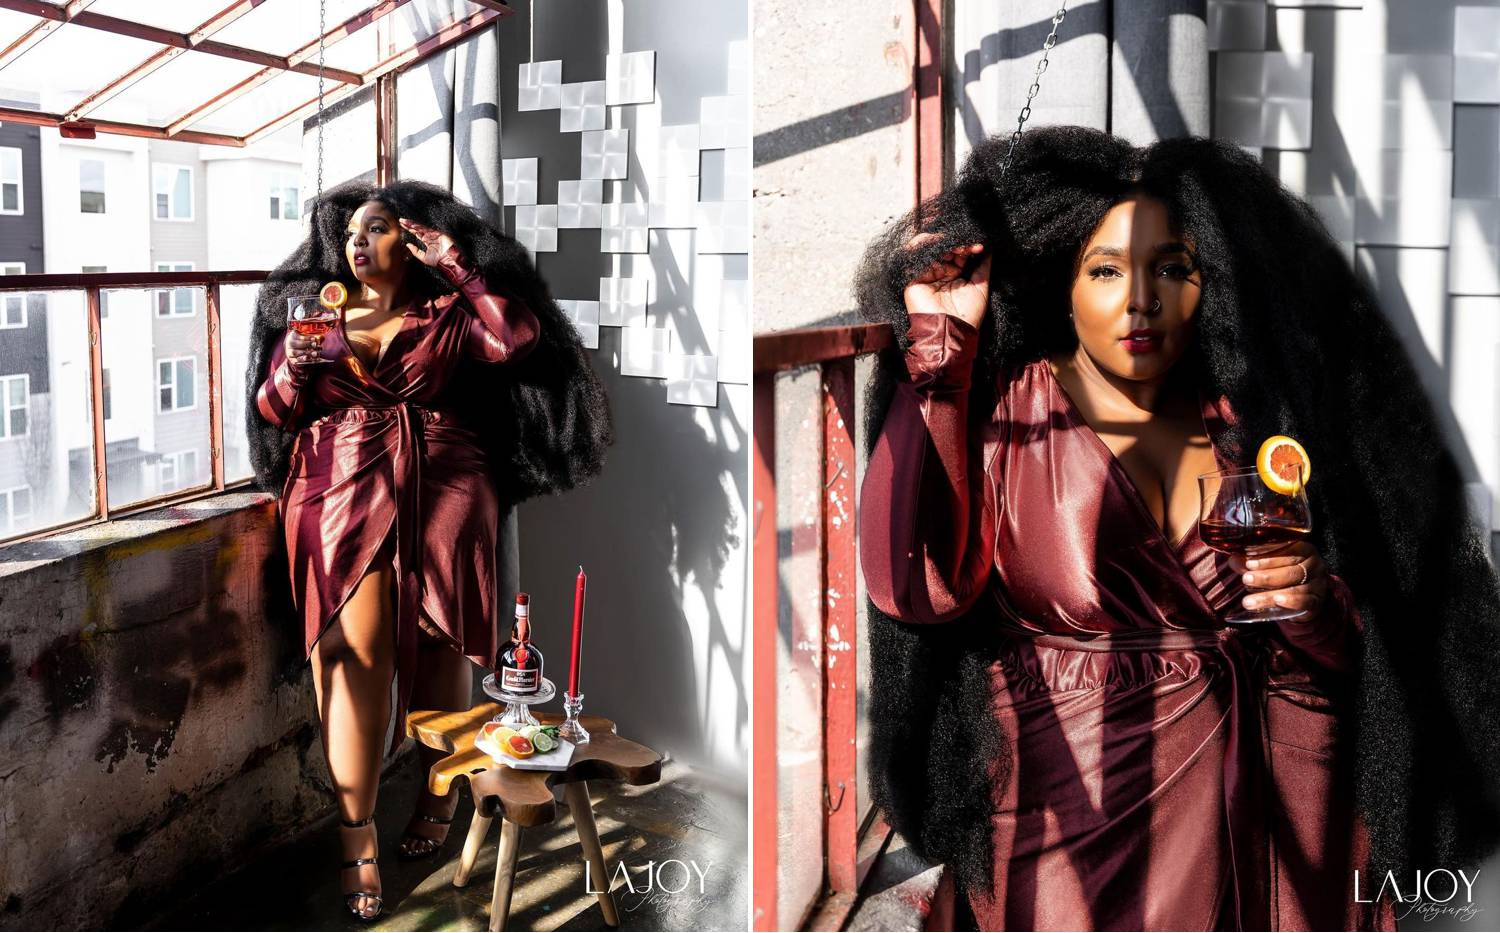 Photos: LaJoy Cox's portraits of a Lizzo look-alike show the gorgeous woman leaning against a concrete wall as harsh sun illuminates her striking face, burgundy leather dress, and the cocktail she's holding.